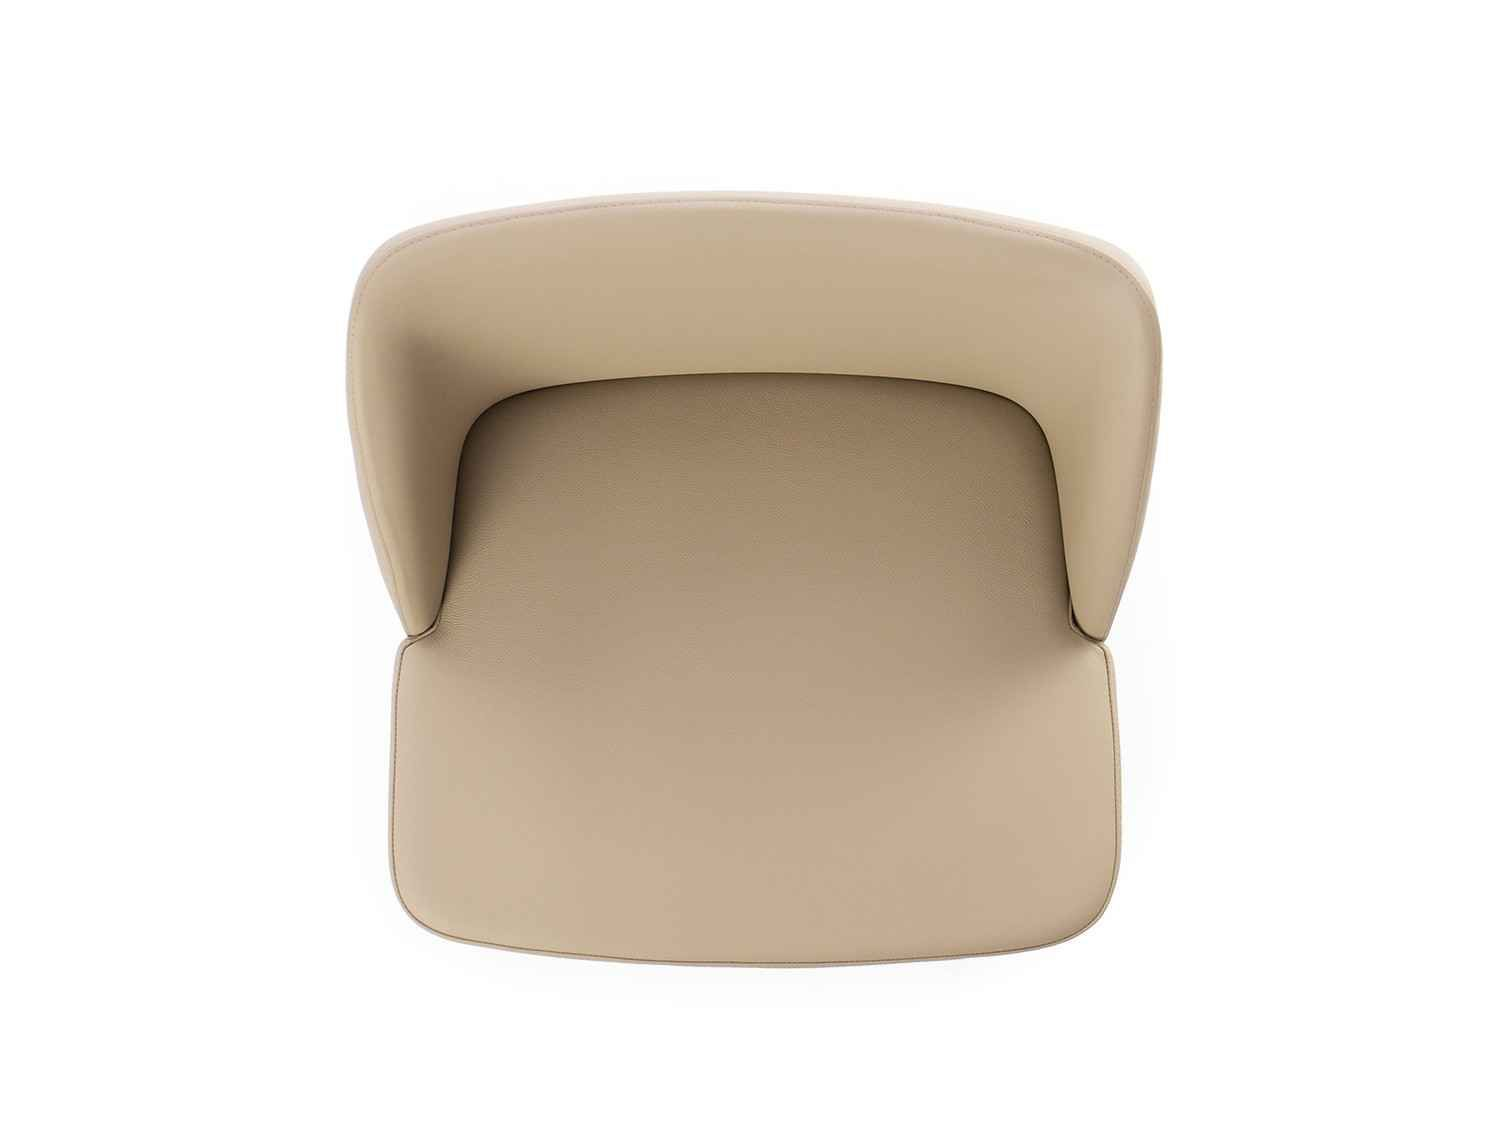 Image Result For Chair Top View Photoshop Images In 2018